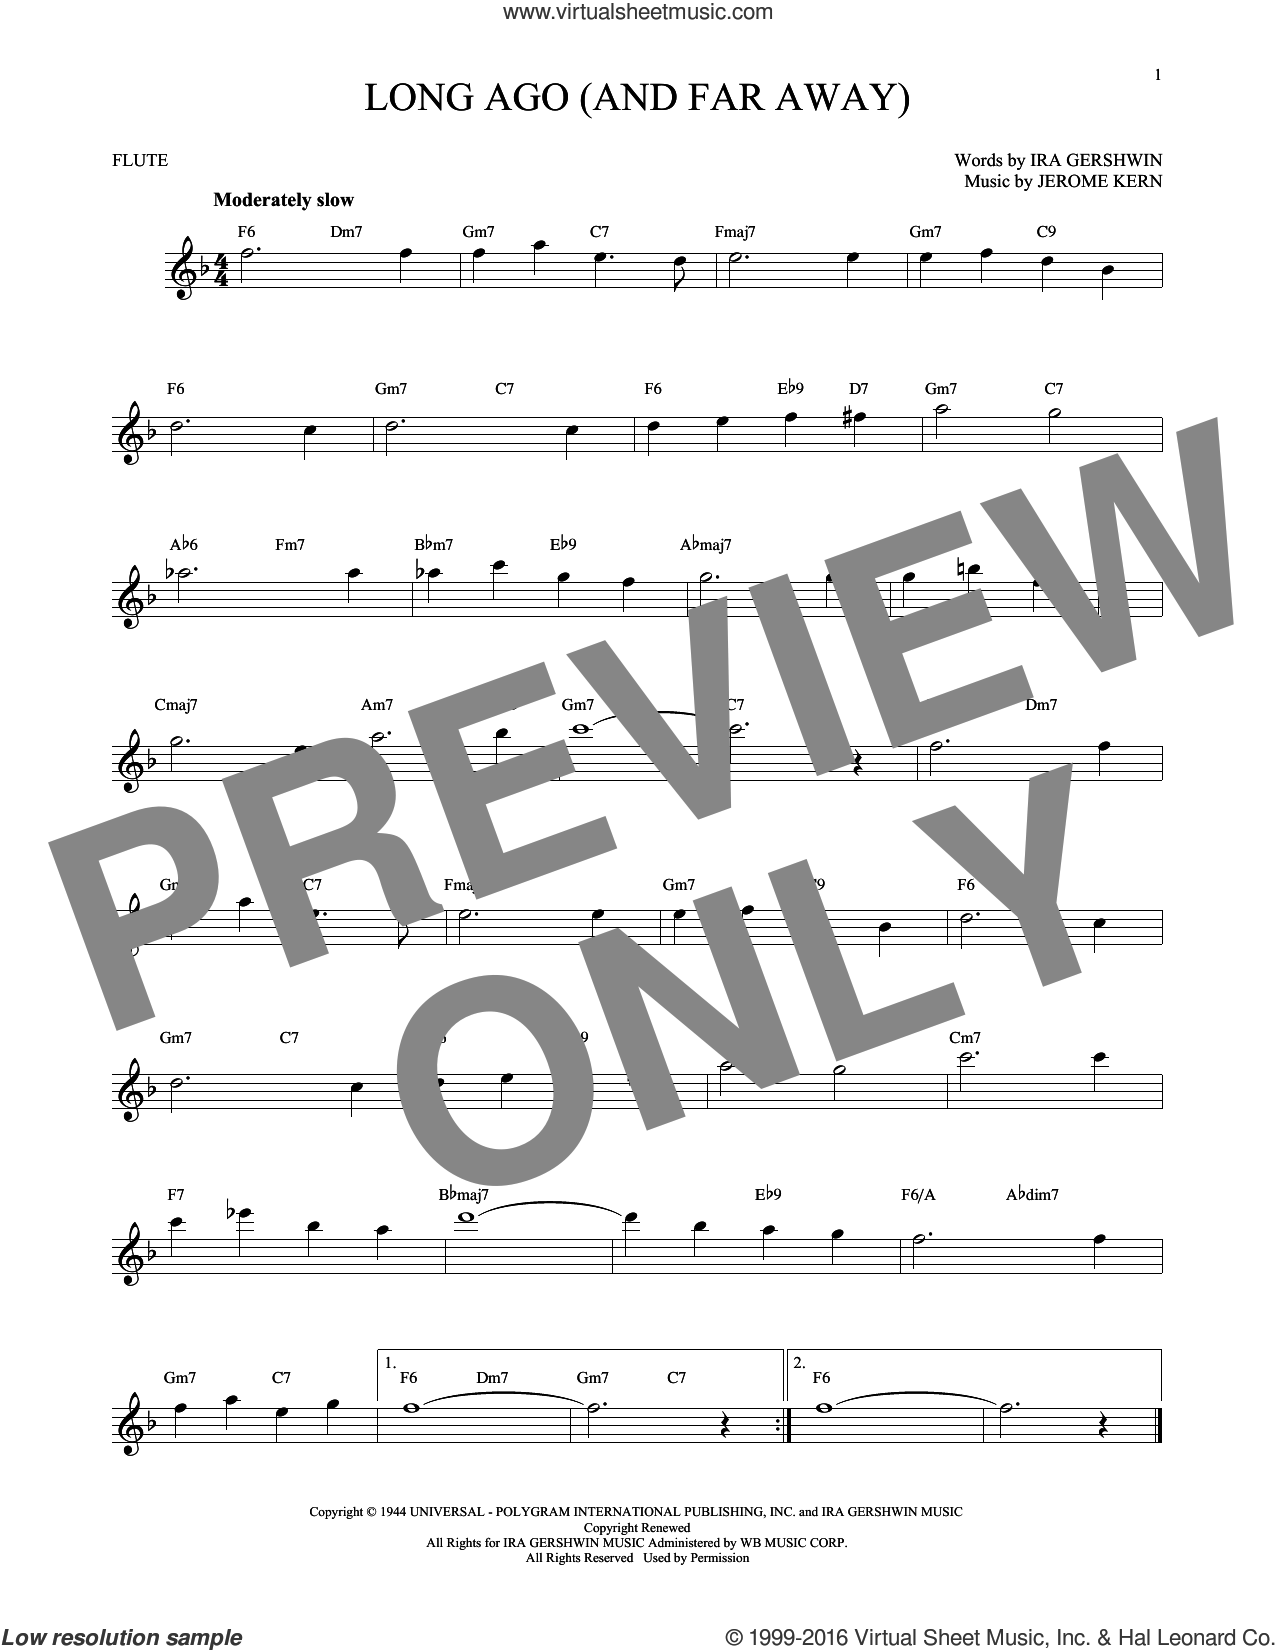 Long Ago (And Far Away) sheet music for flute solo by Ira Gershwin and Jerome Kern, intermediate skill level